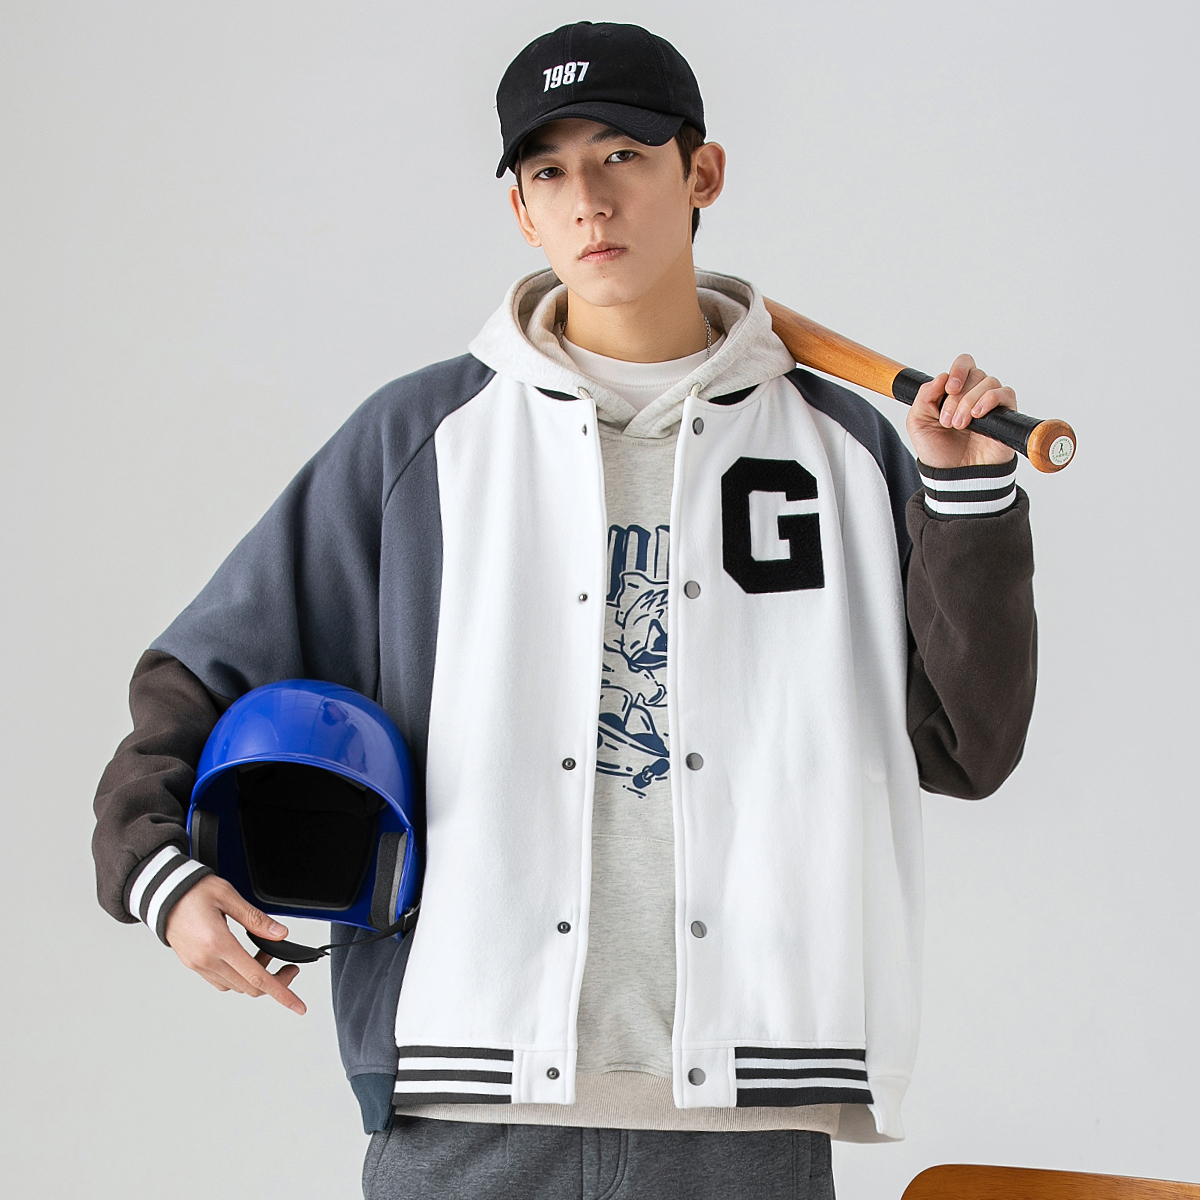 GBOY spring and autumn baseball uniform men's tide brand loose casual wild letter embroidery color matching stitching trendy jacket jacket